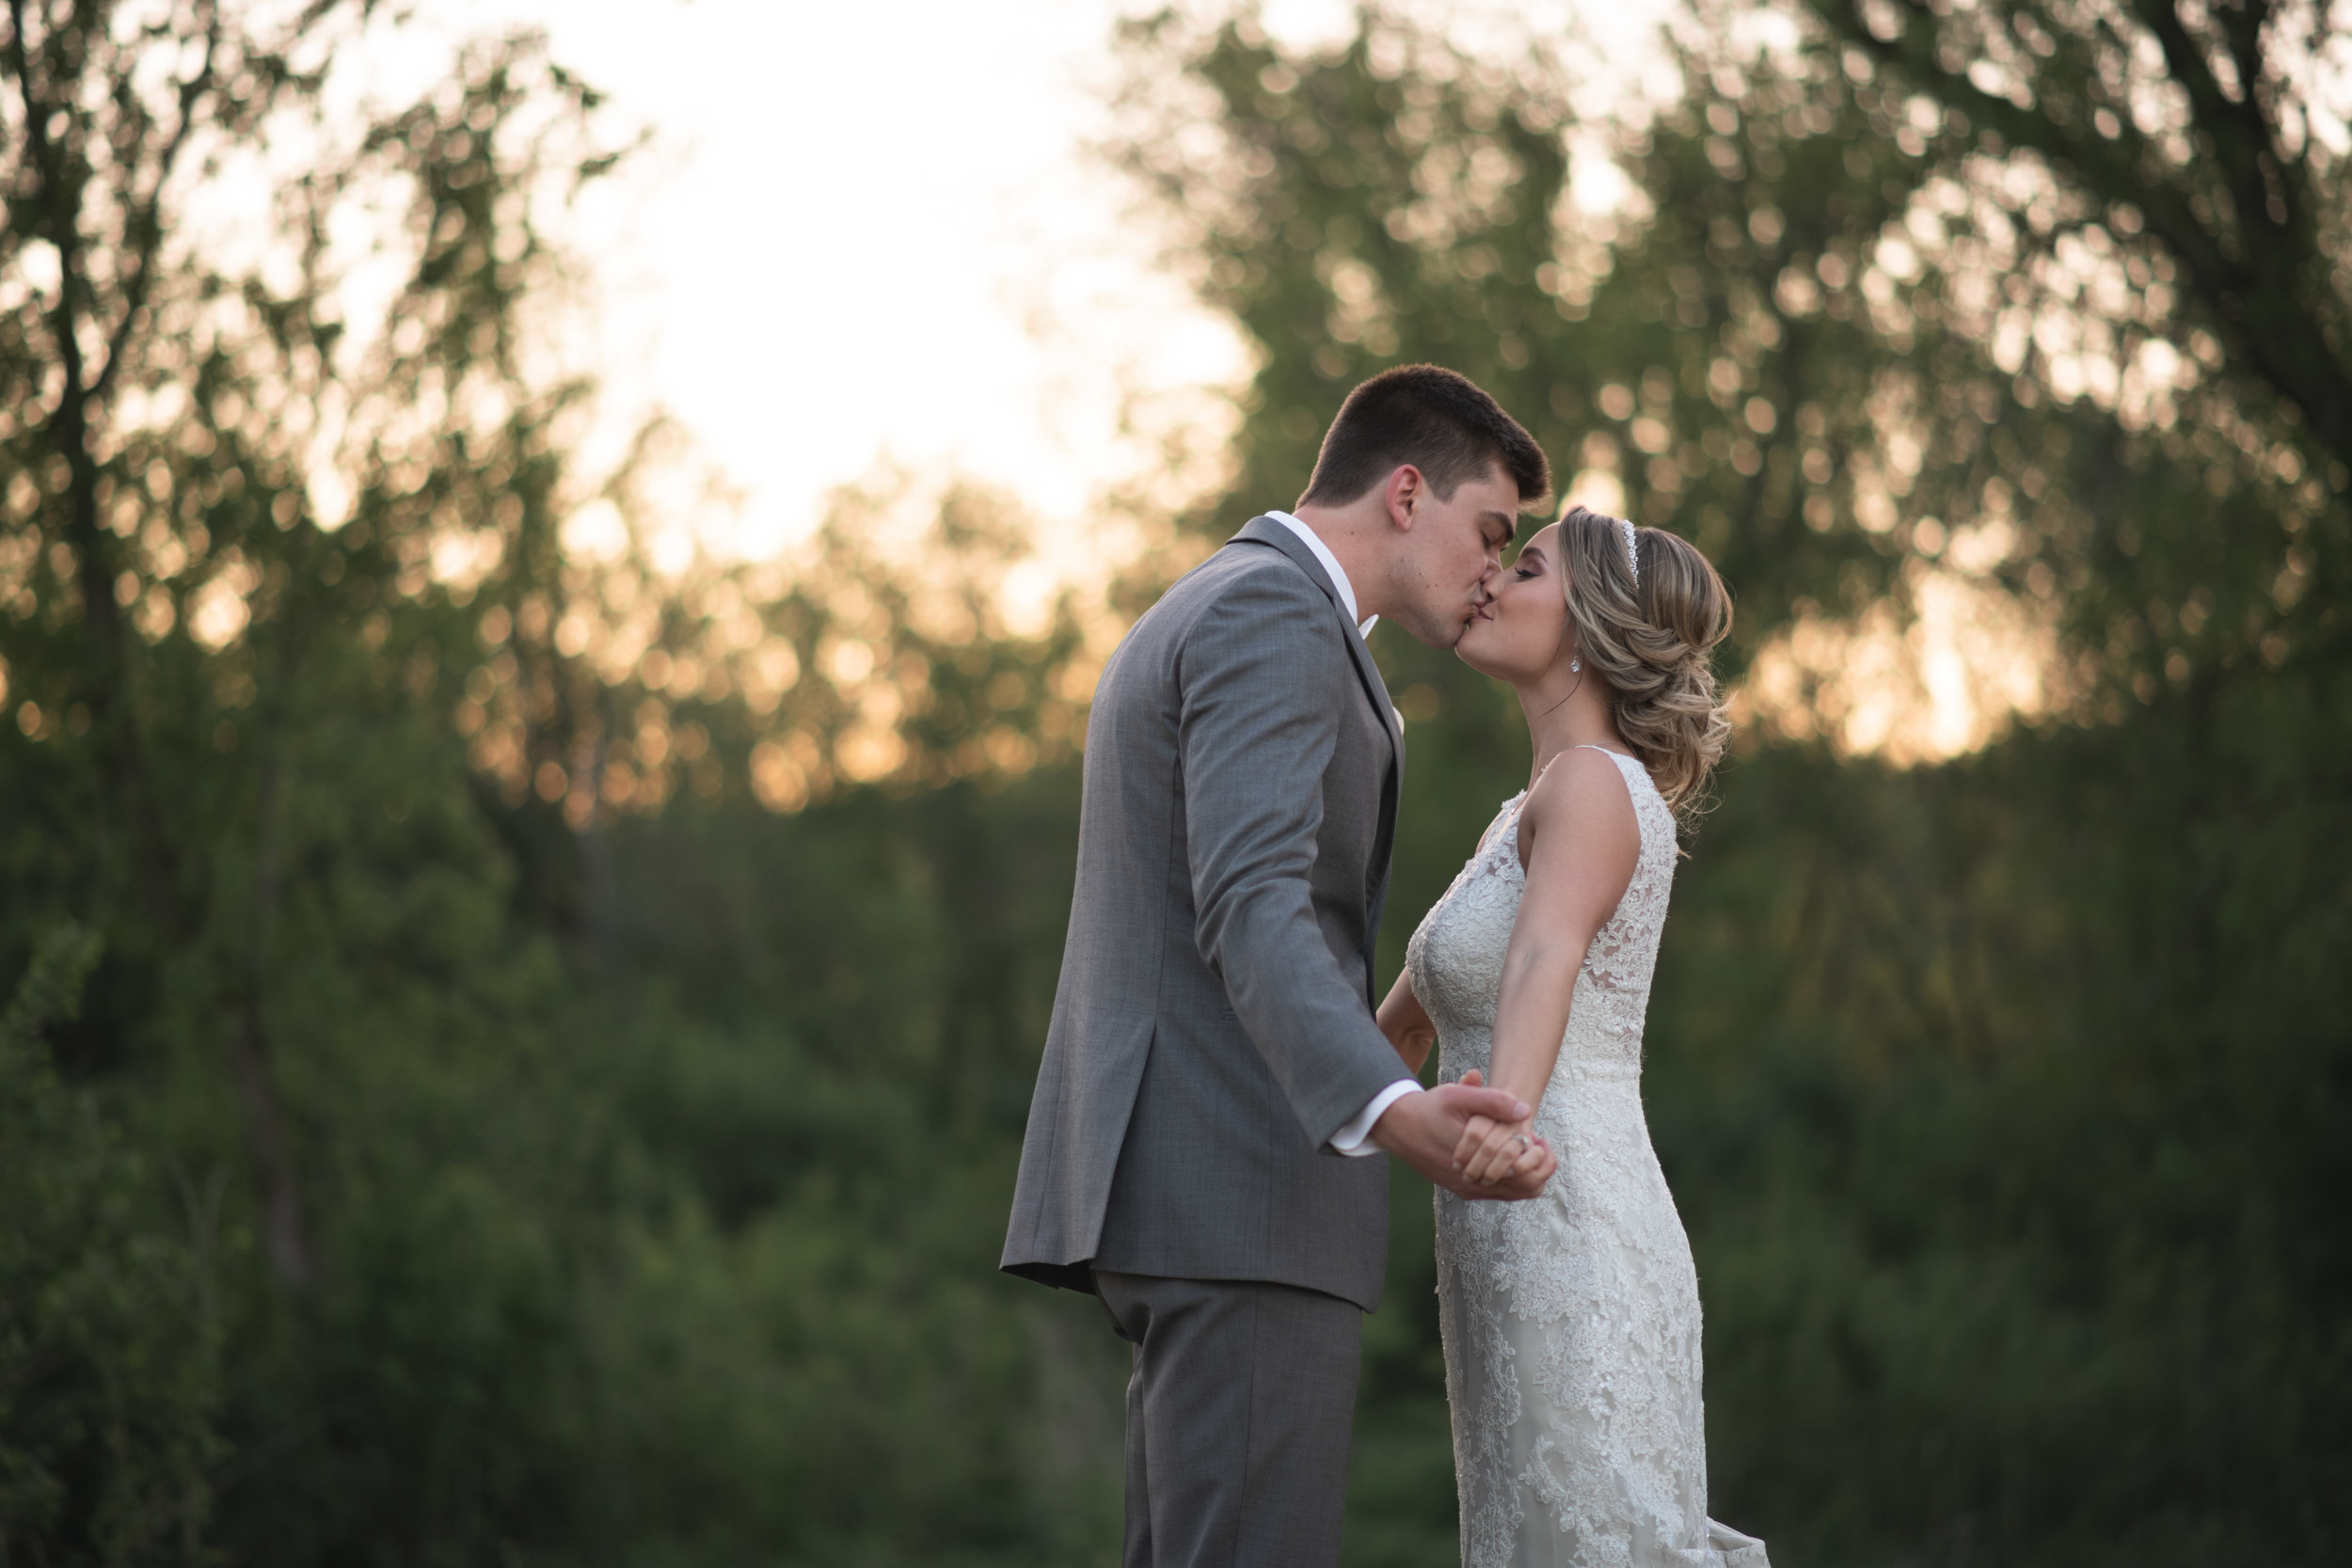 Rachel + Evan at Hawk's View (May 26, 2019)